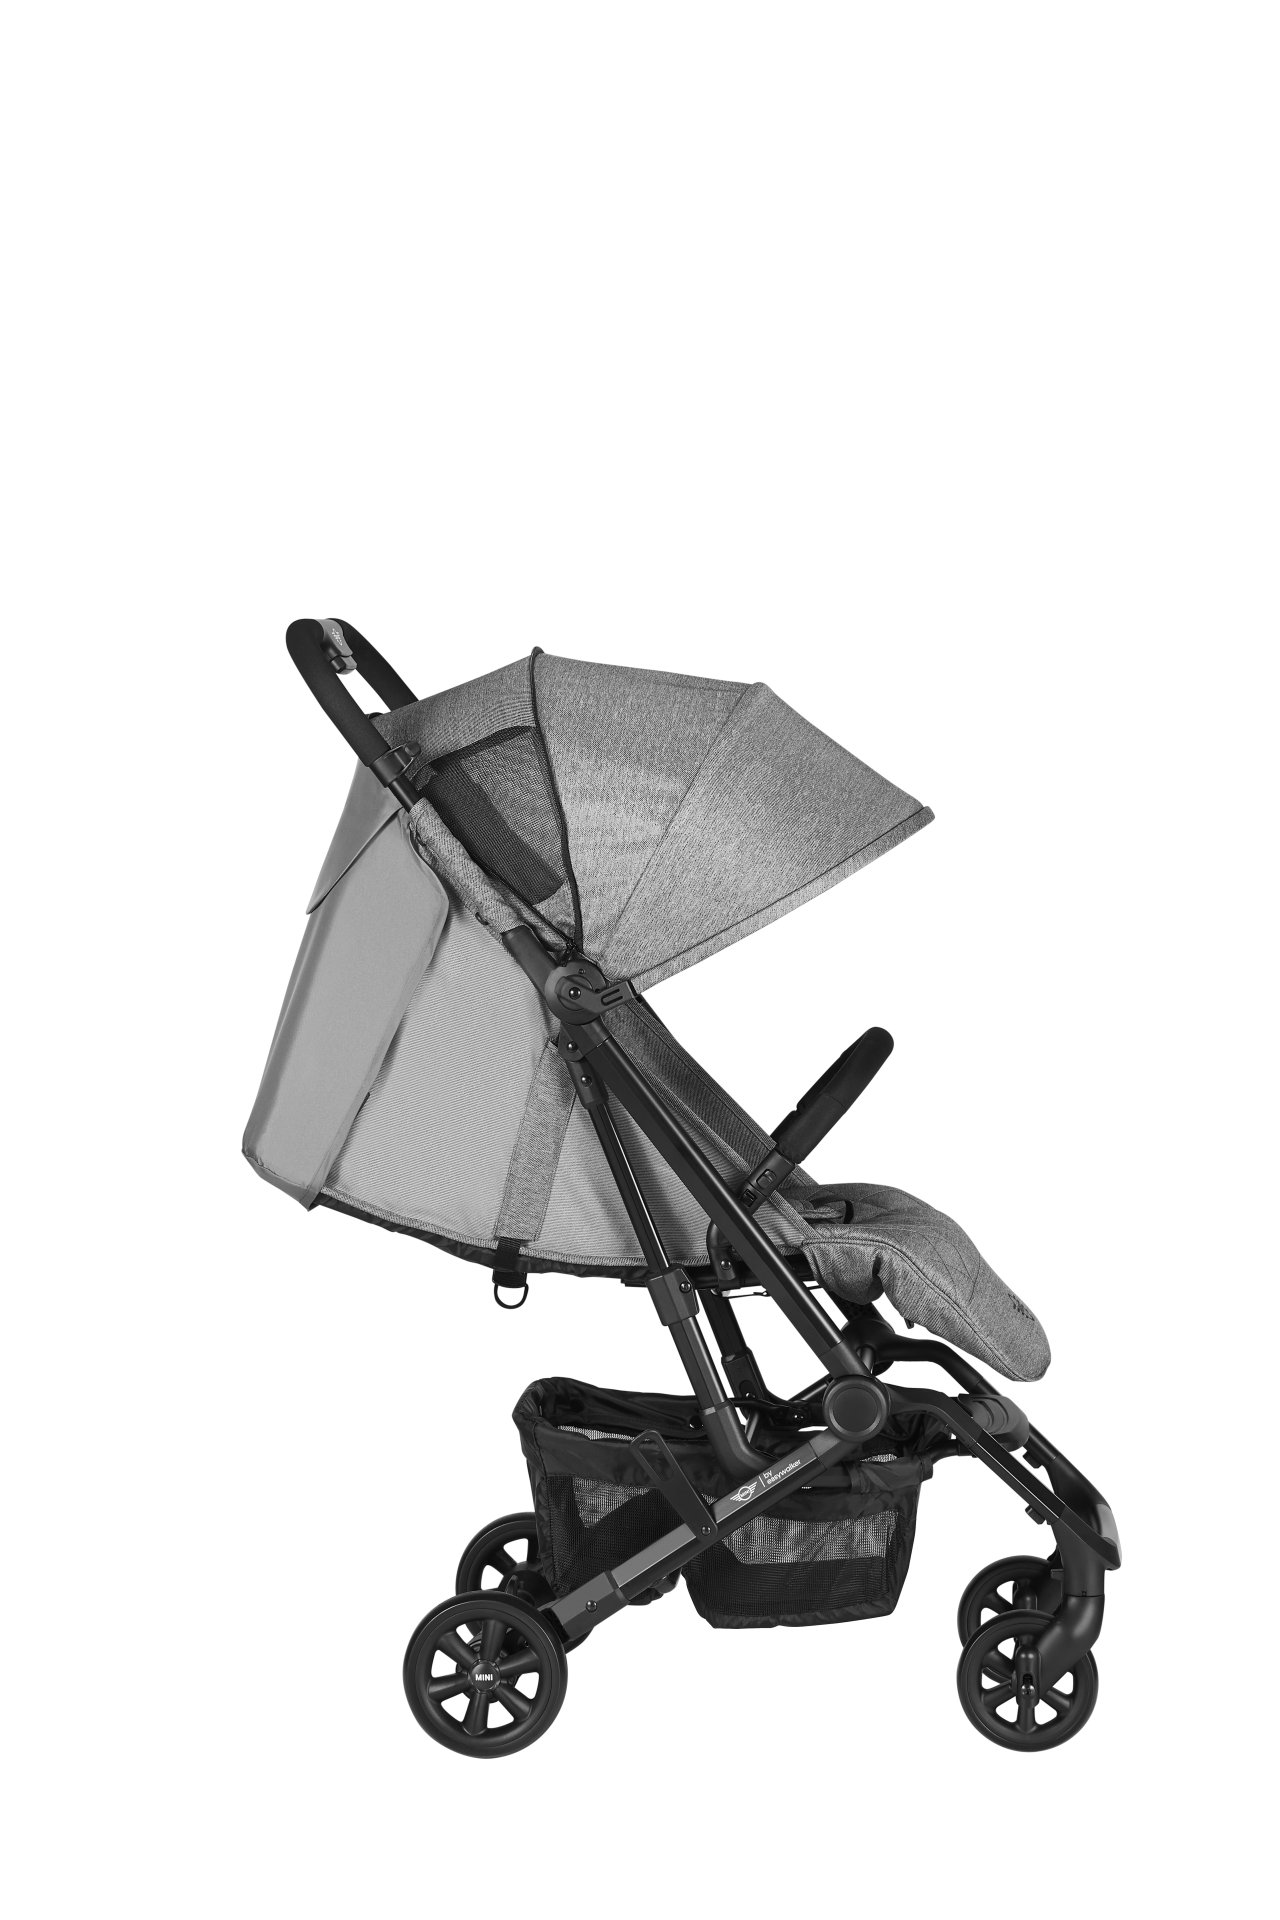 b9e579ca79 ... MINI Buggy XS by Easywalker Soho Grey 2019 - large image 3 ...